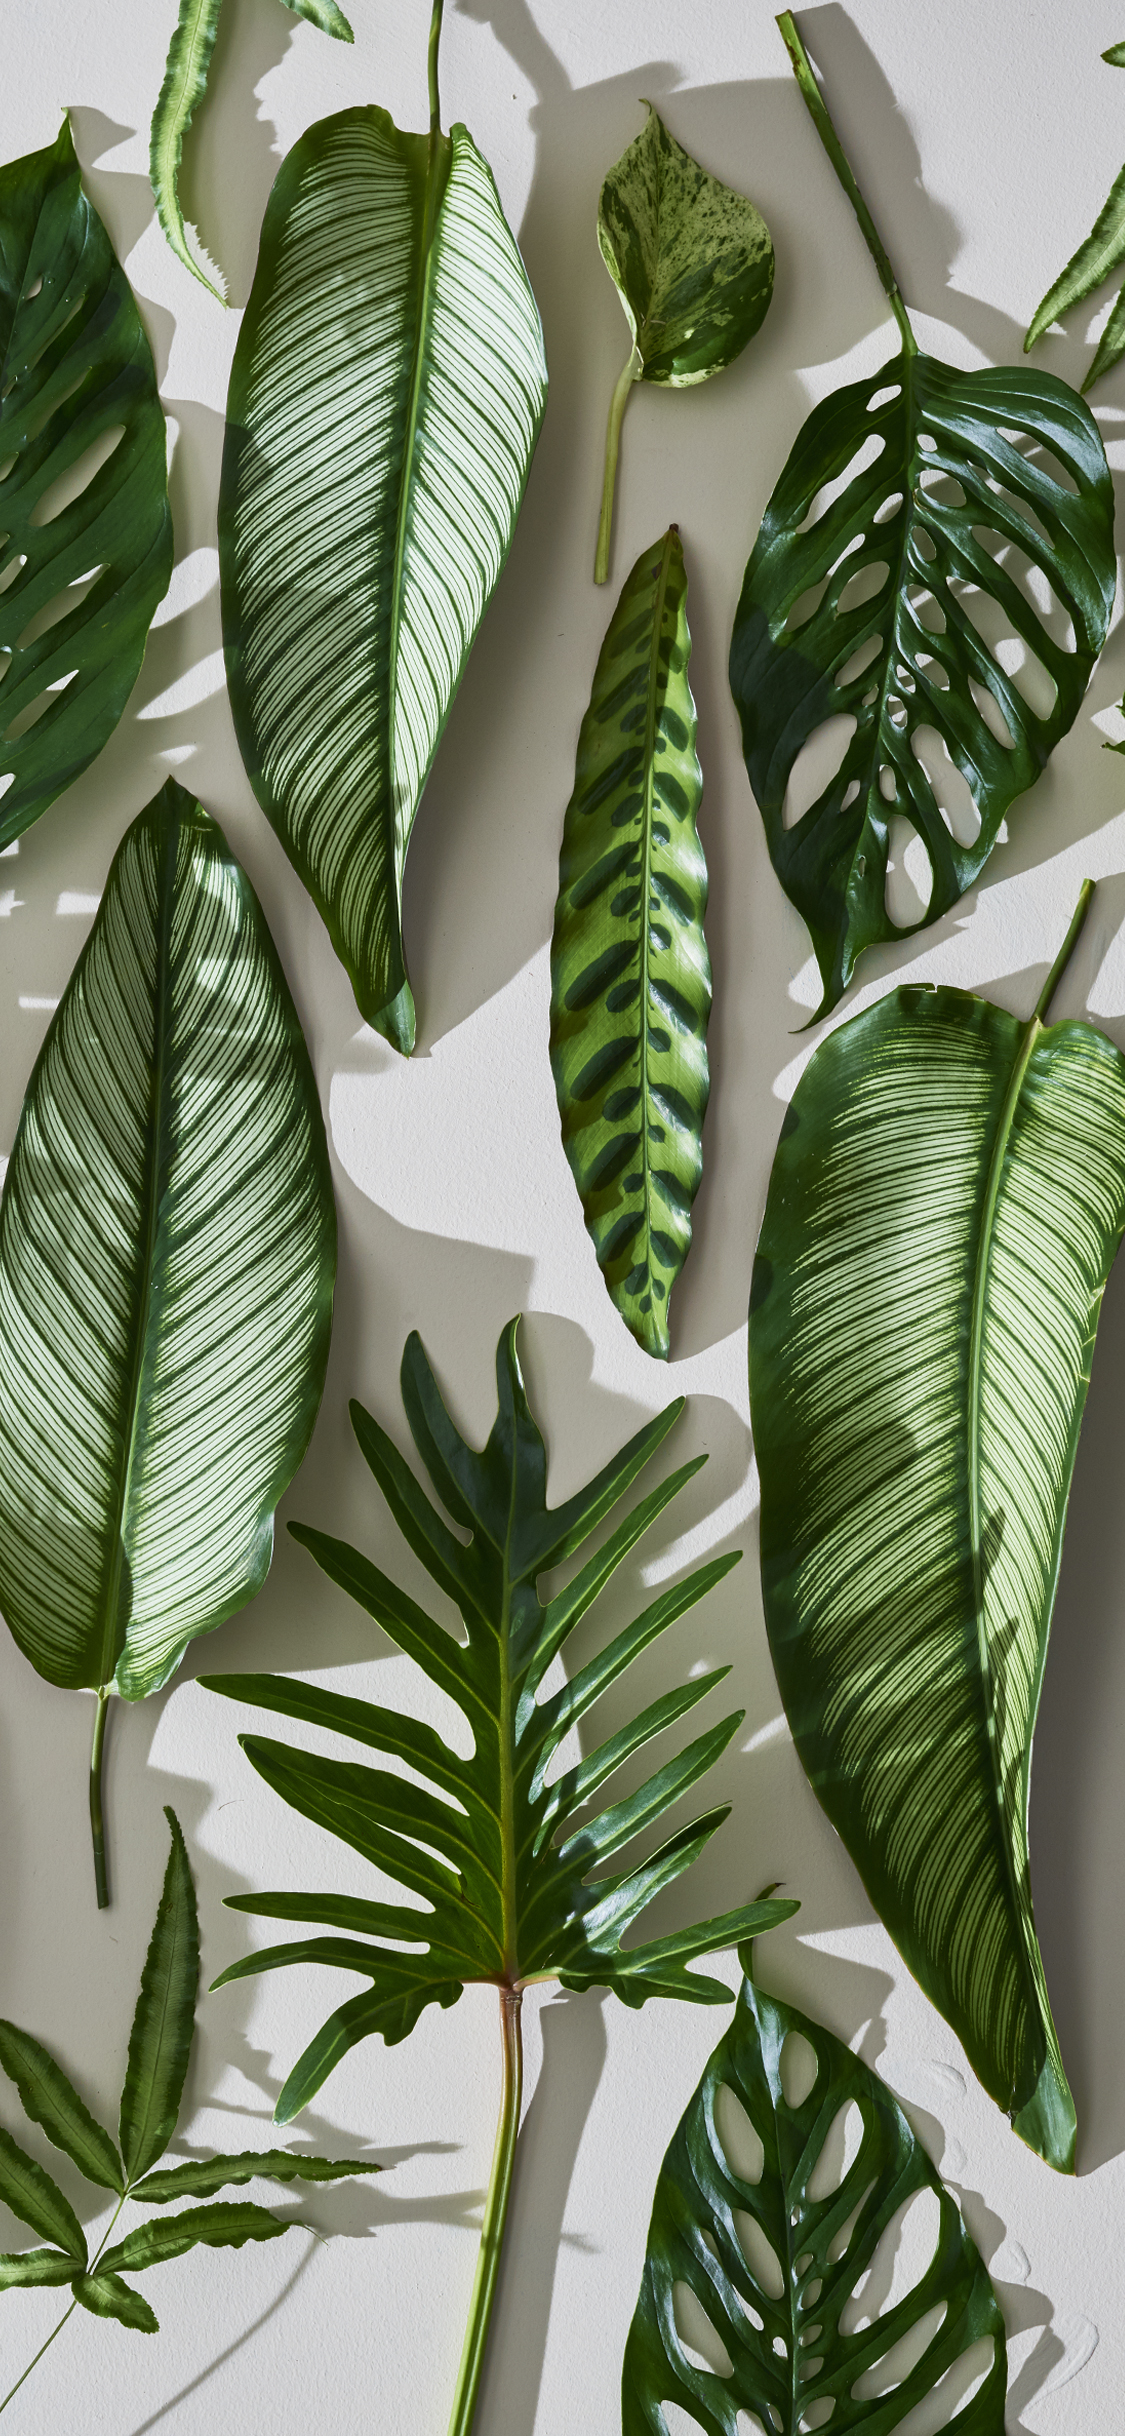 tropical leaves freshen with this tropical leaf mobile wallpaper #161